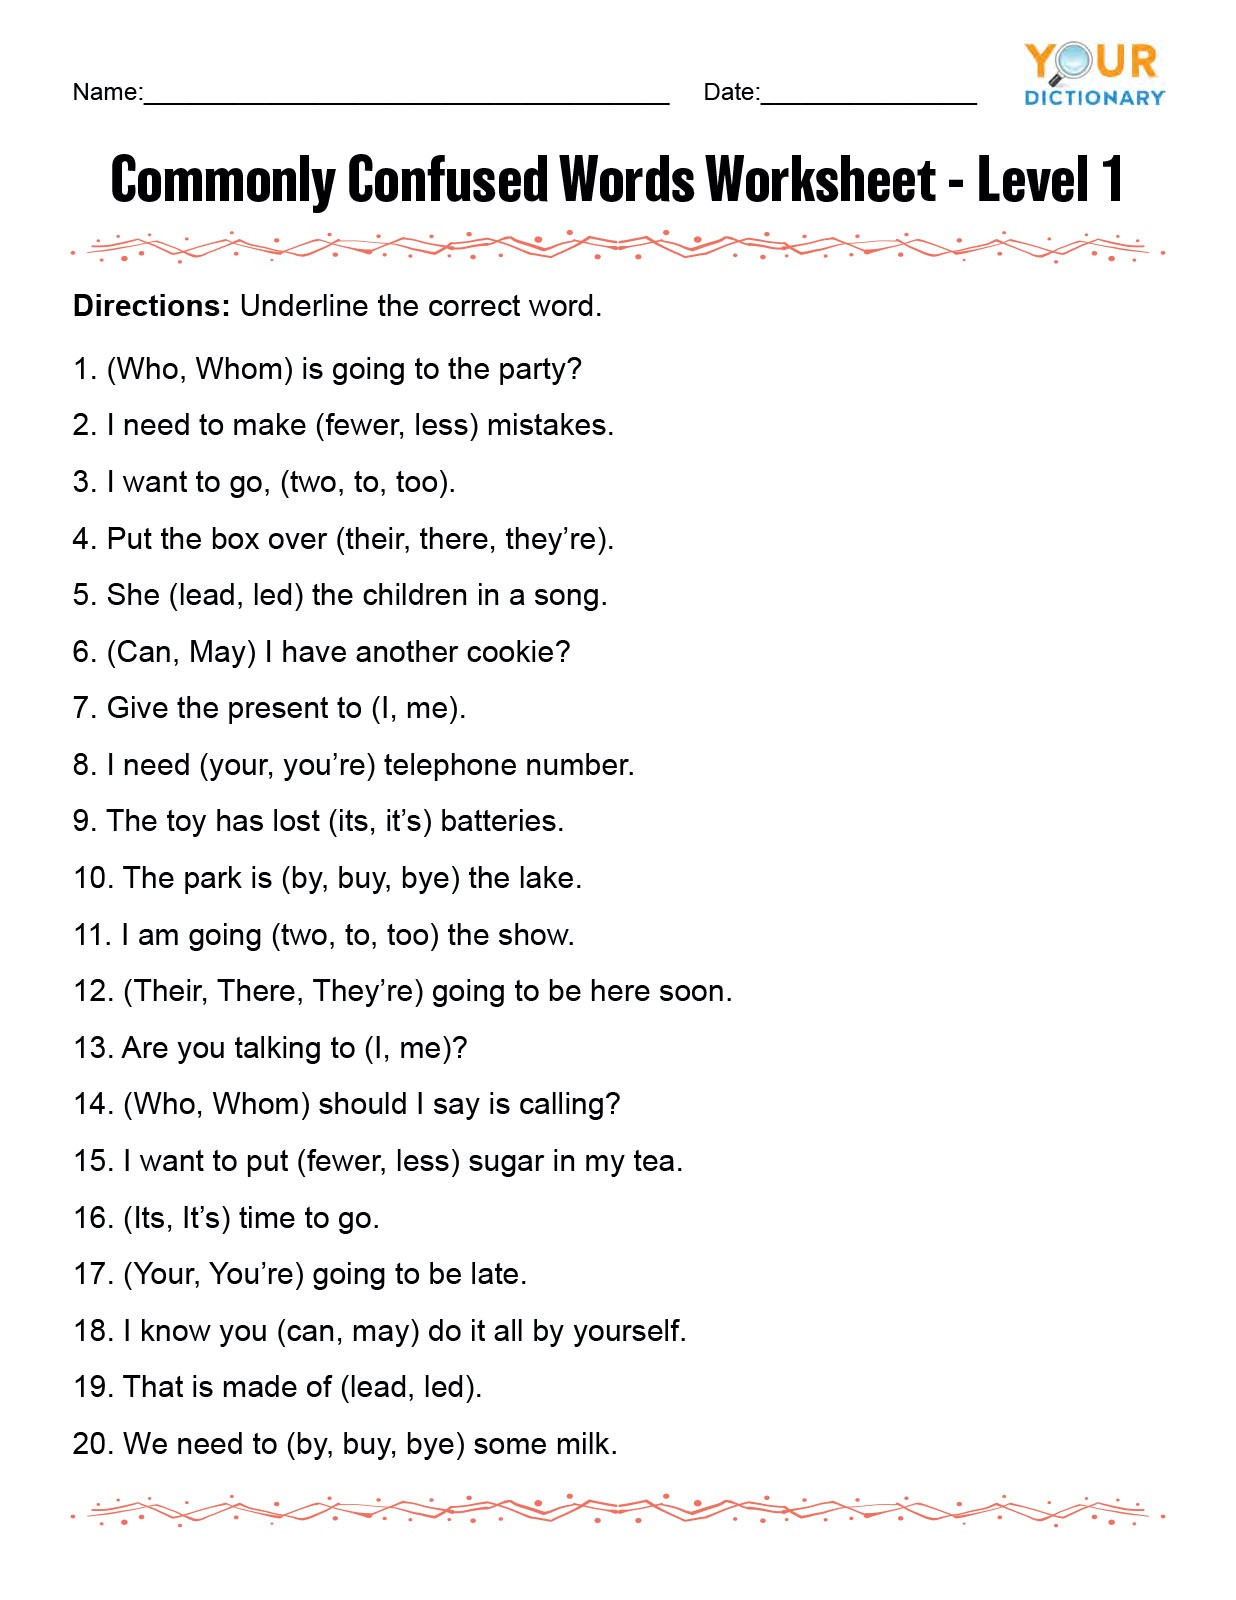 Homophone Worksheet 4th Grade Monly Confused Words Worksheet